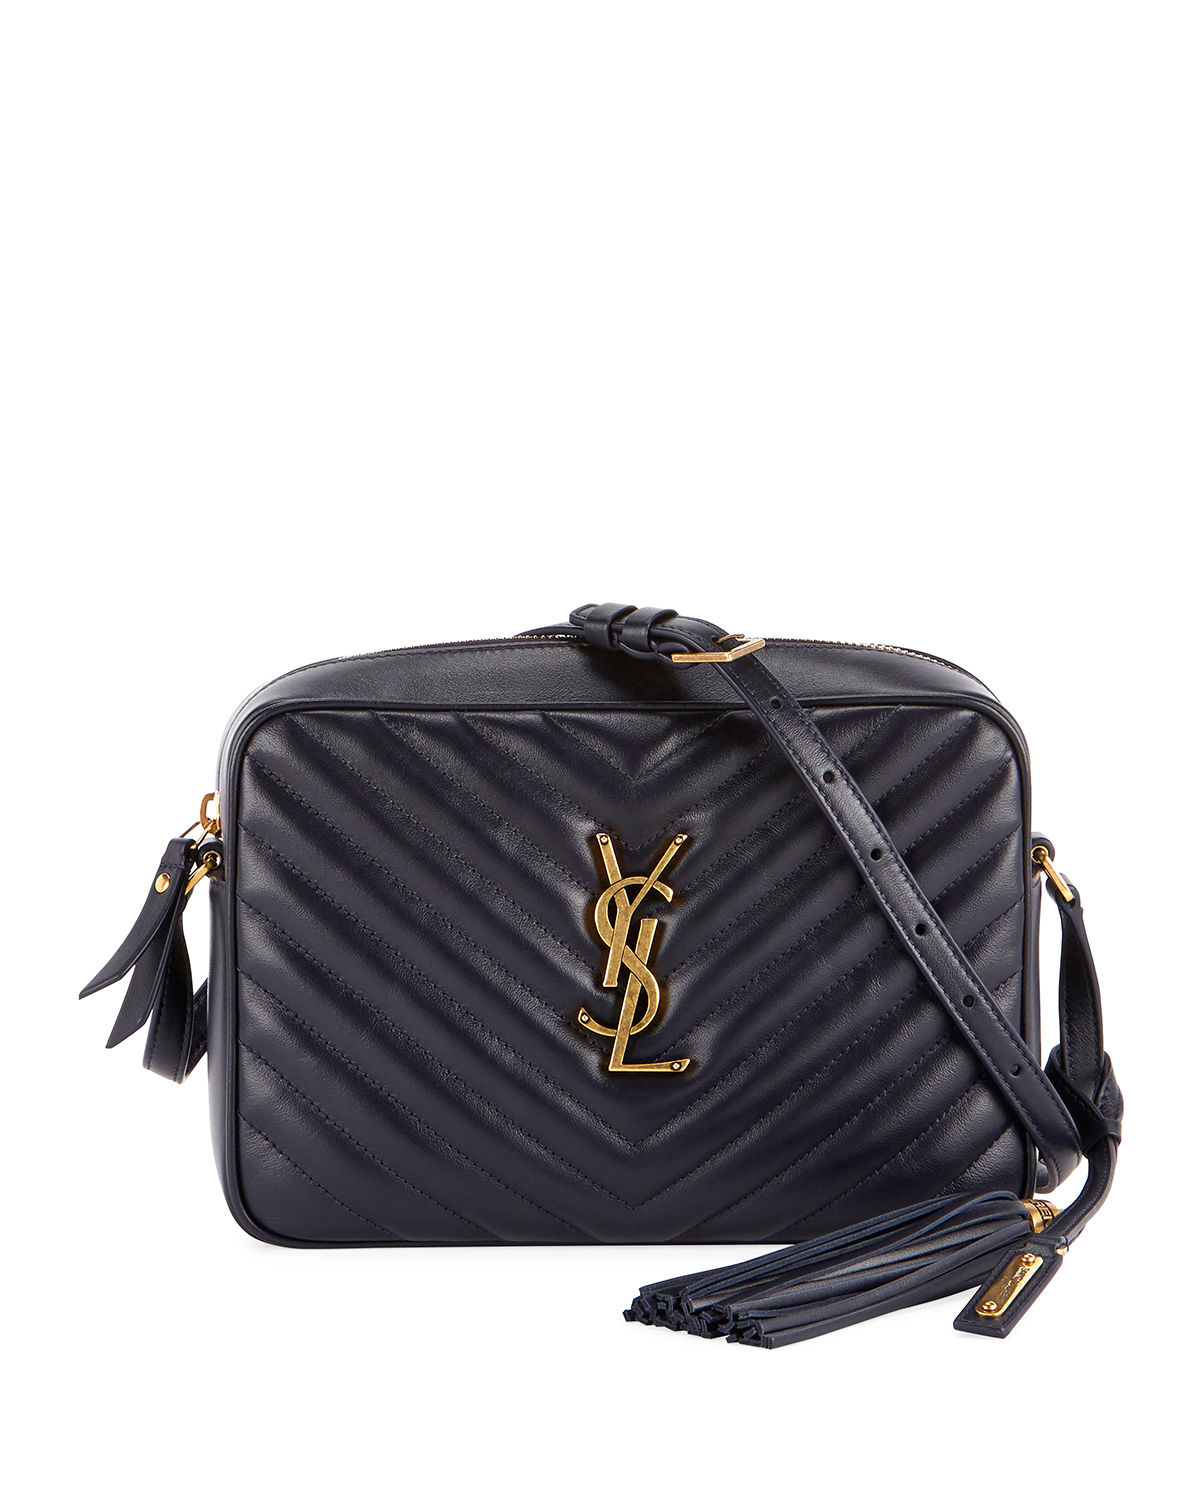 Saint LaurentLoulou Monogram YSL Medium Chevron Quilted Leather Camera  Shoulder Bag - Brilliant Golden Hardware a368056e8c